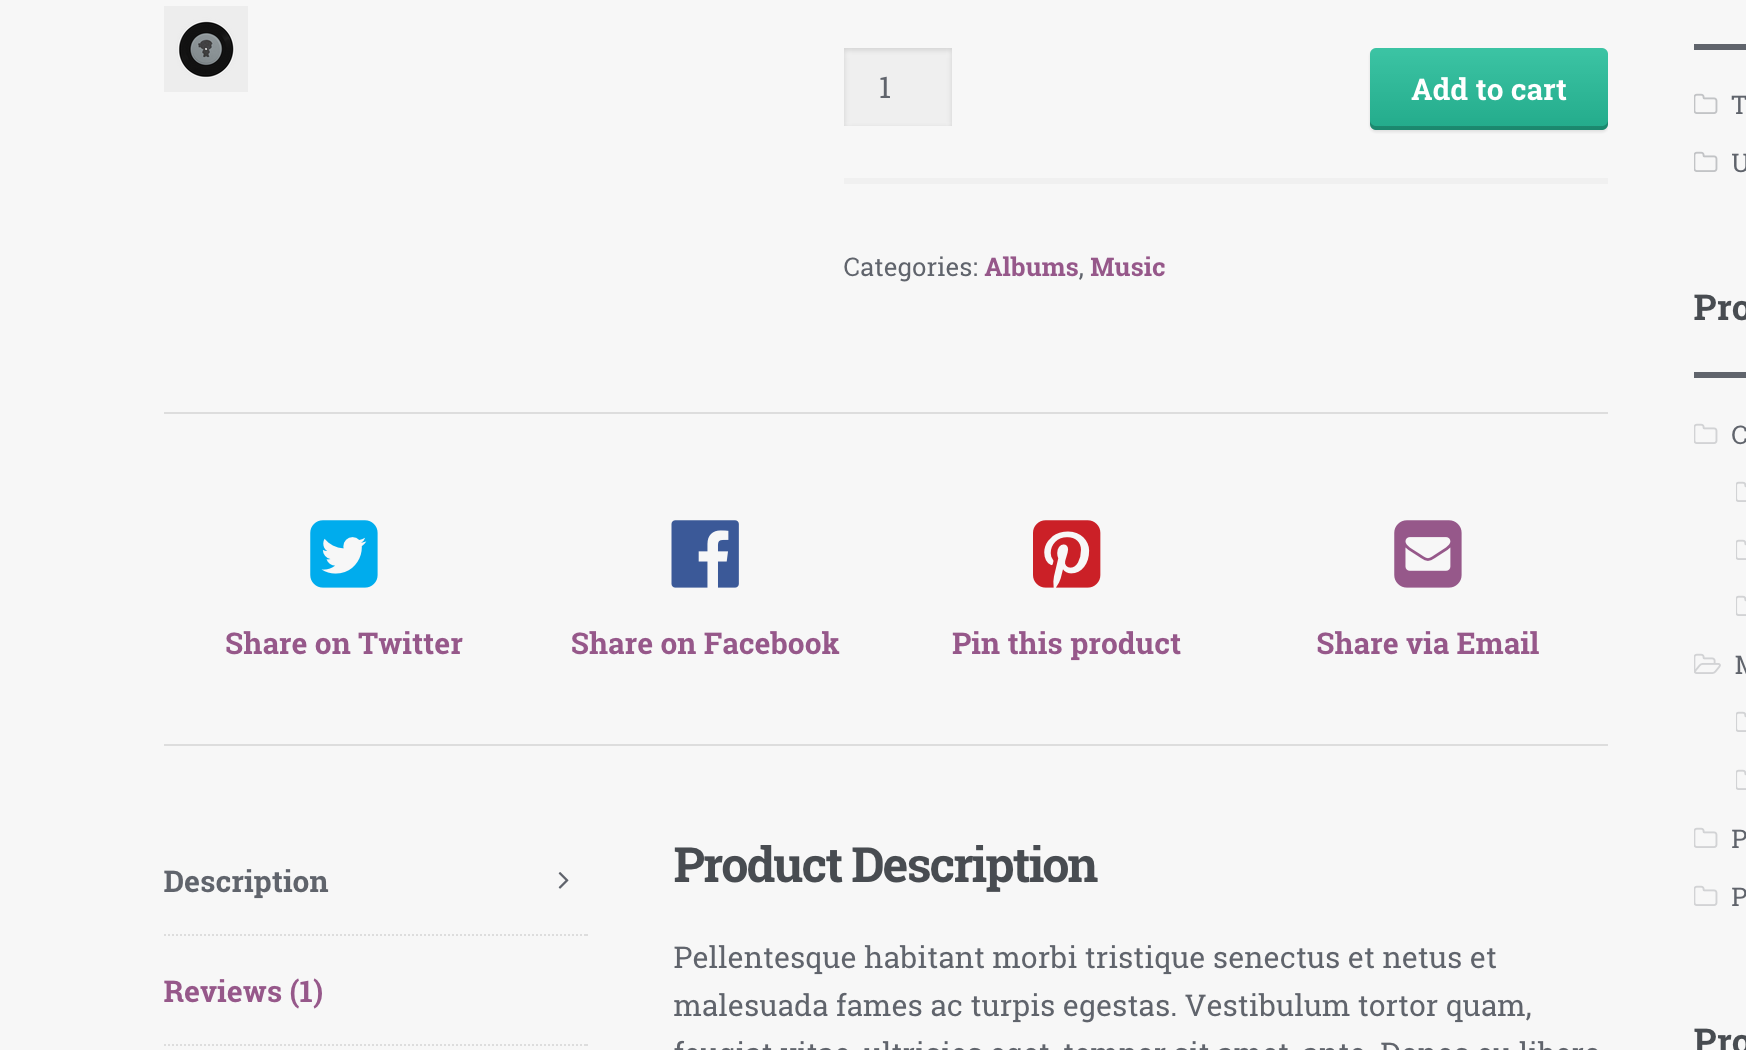 storefront-product-sharing screenshot 1